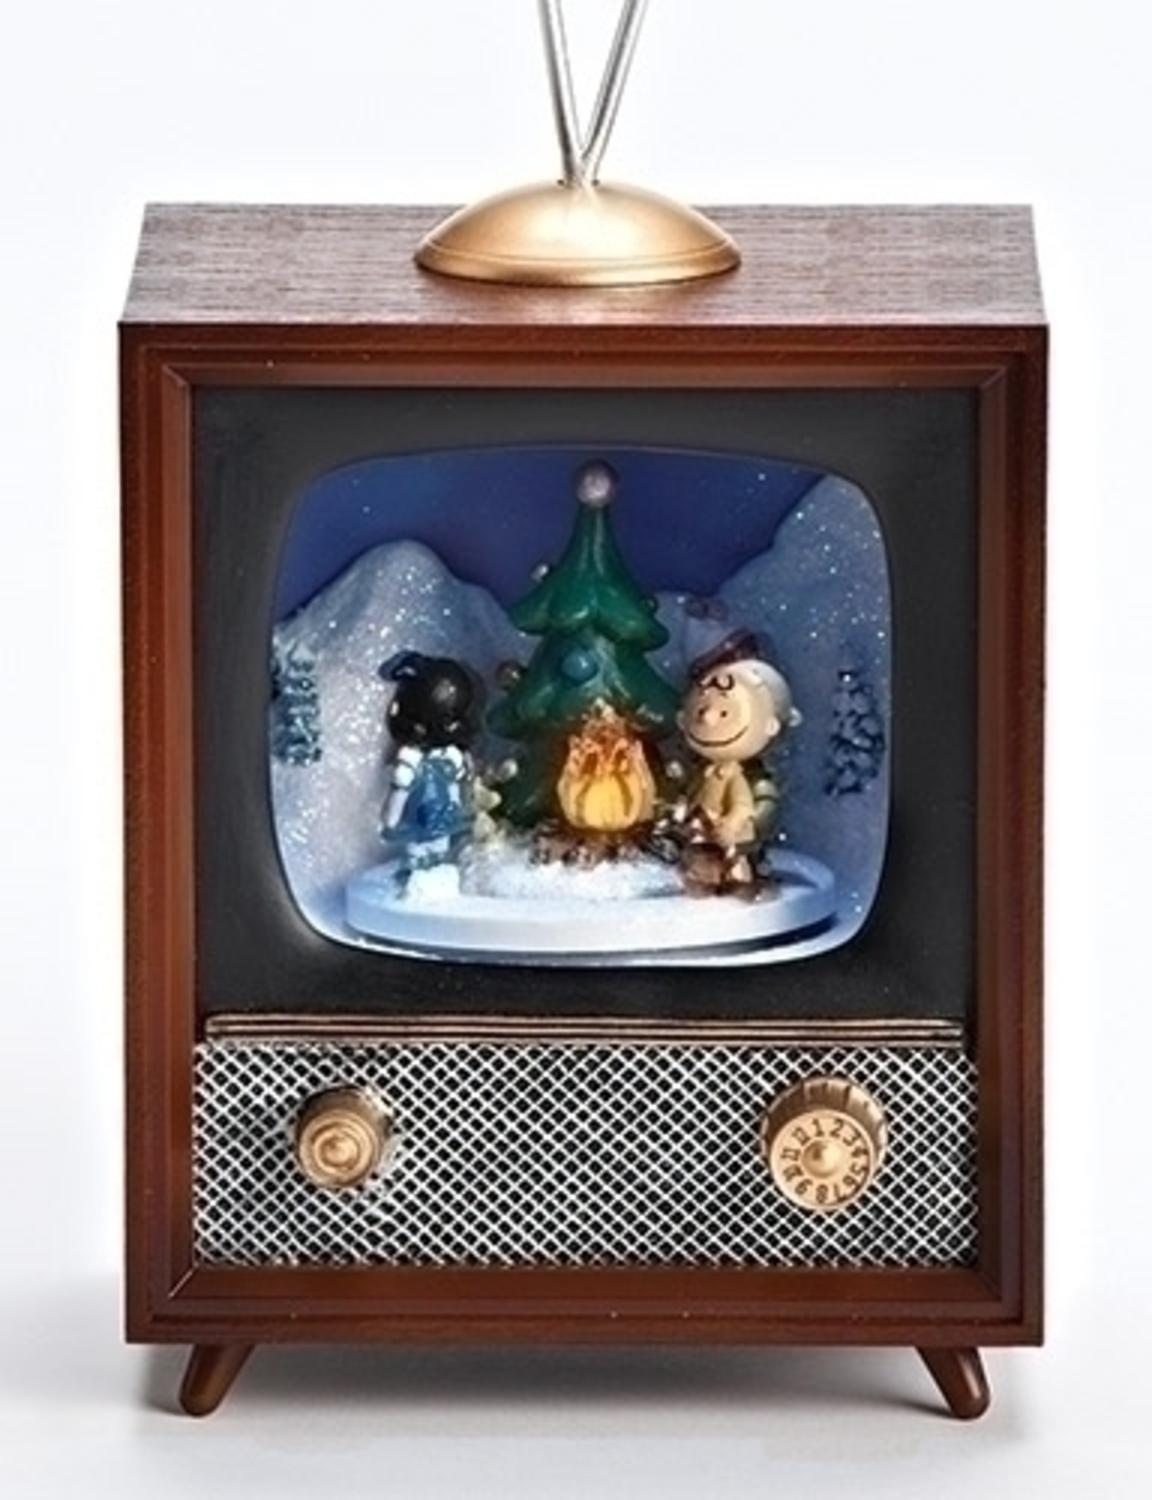 10 musical peanuts campfire television christmas battery operated table top decoration walmartcom